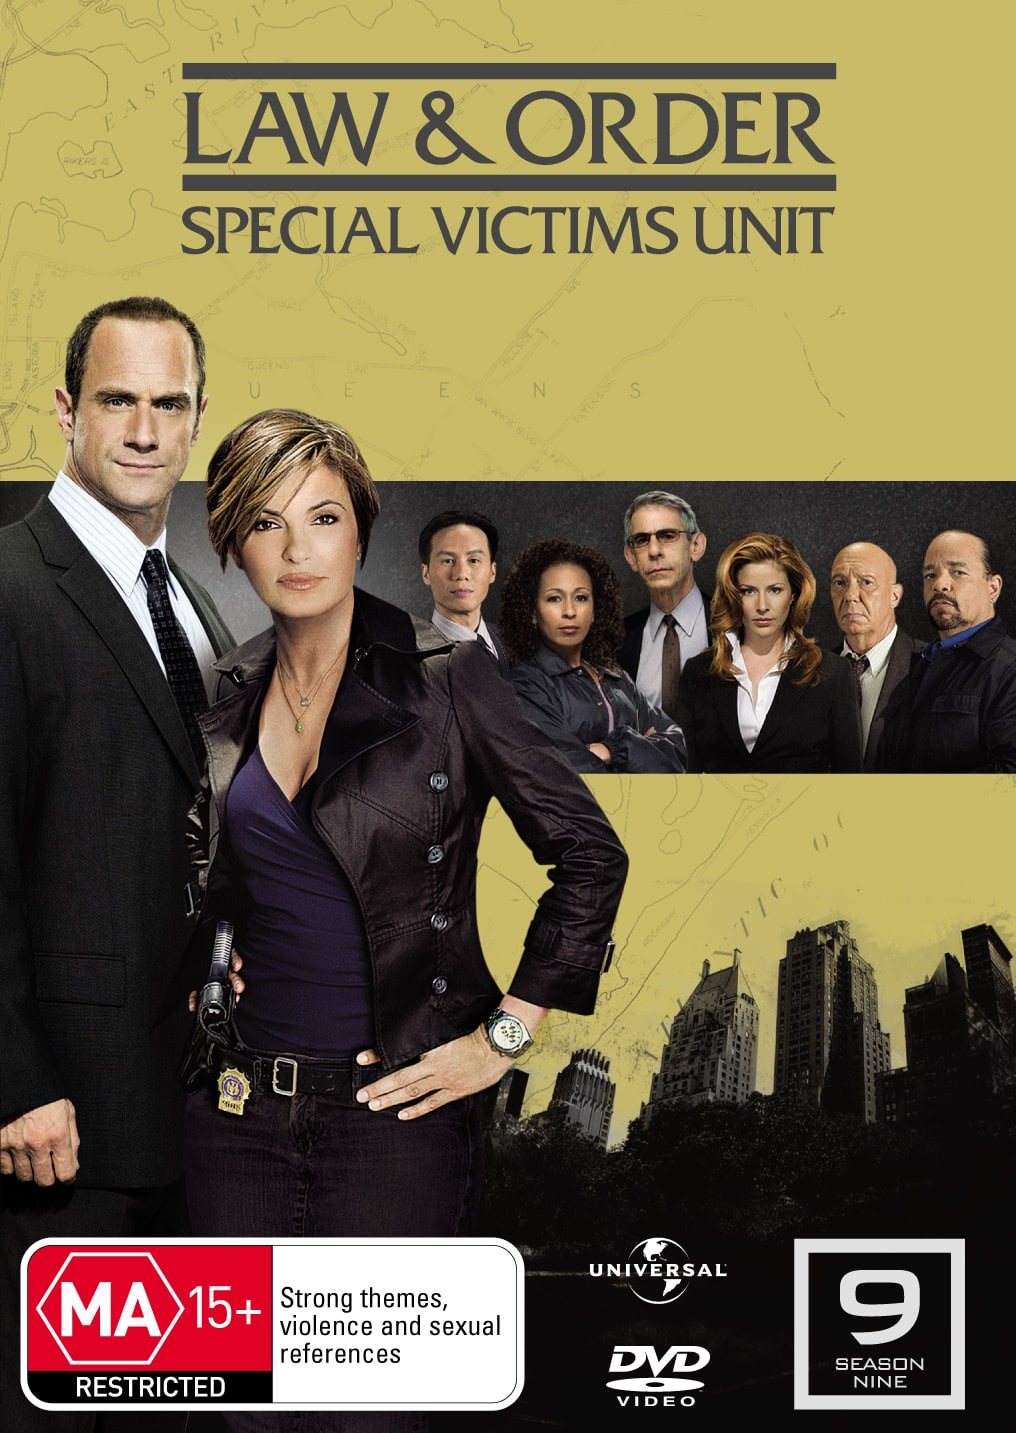 Law and Order - Special Victims Unit: Season 9 [DVD]